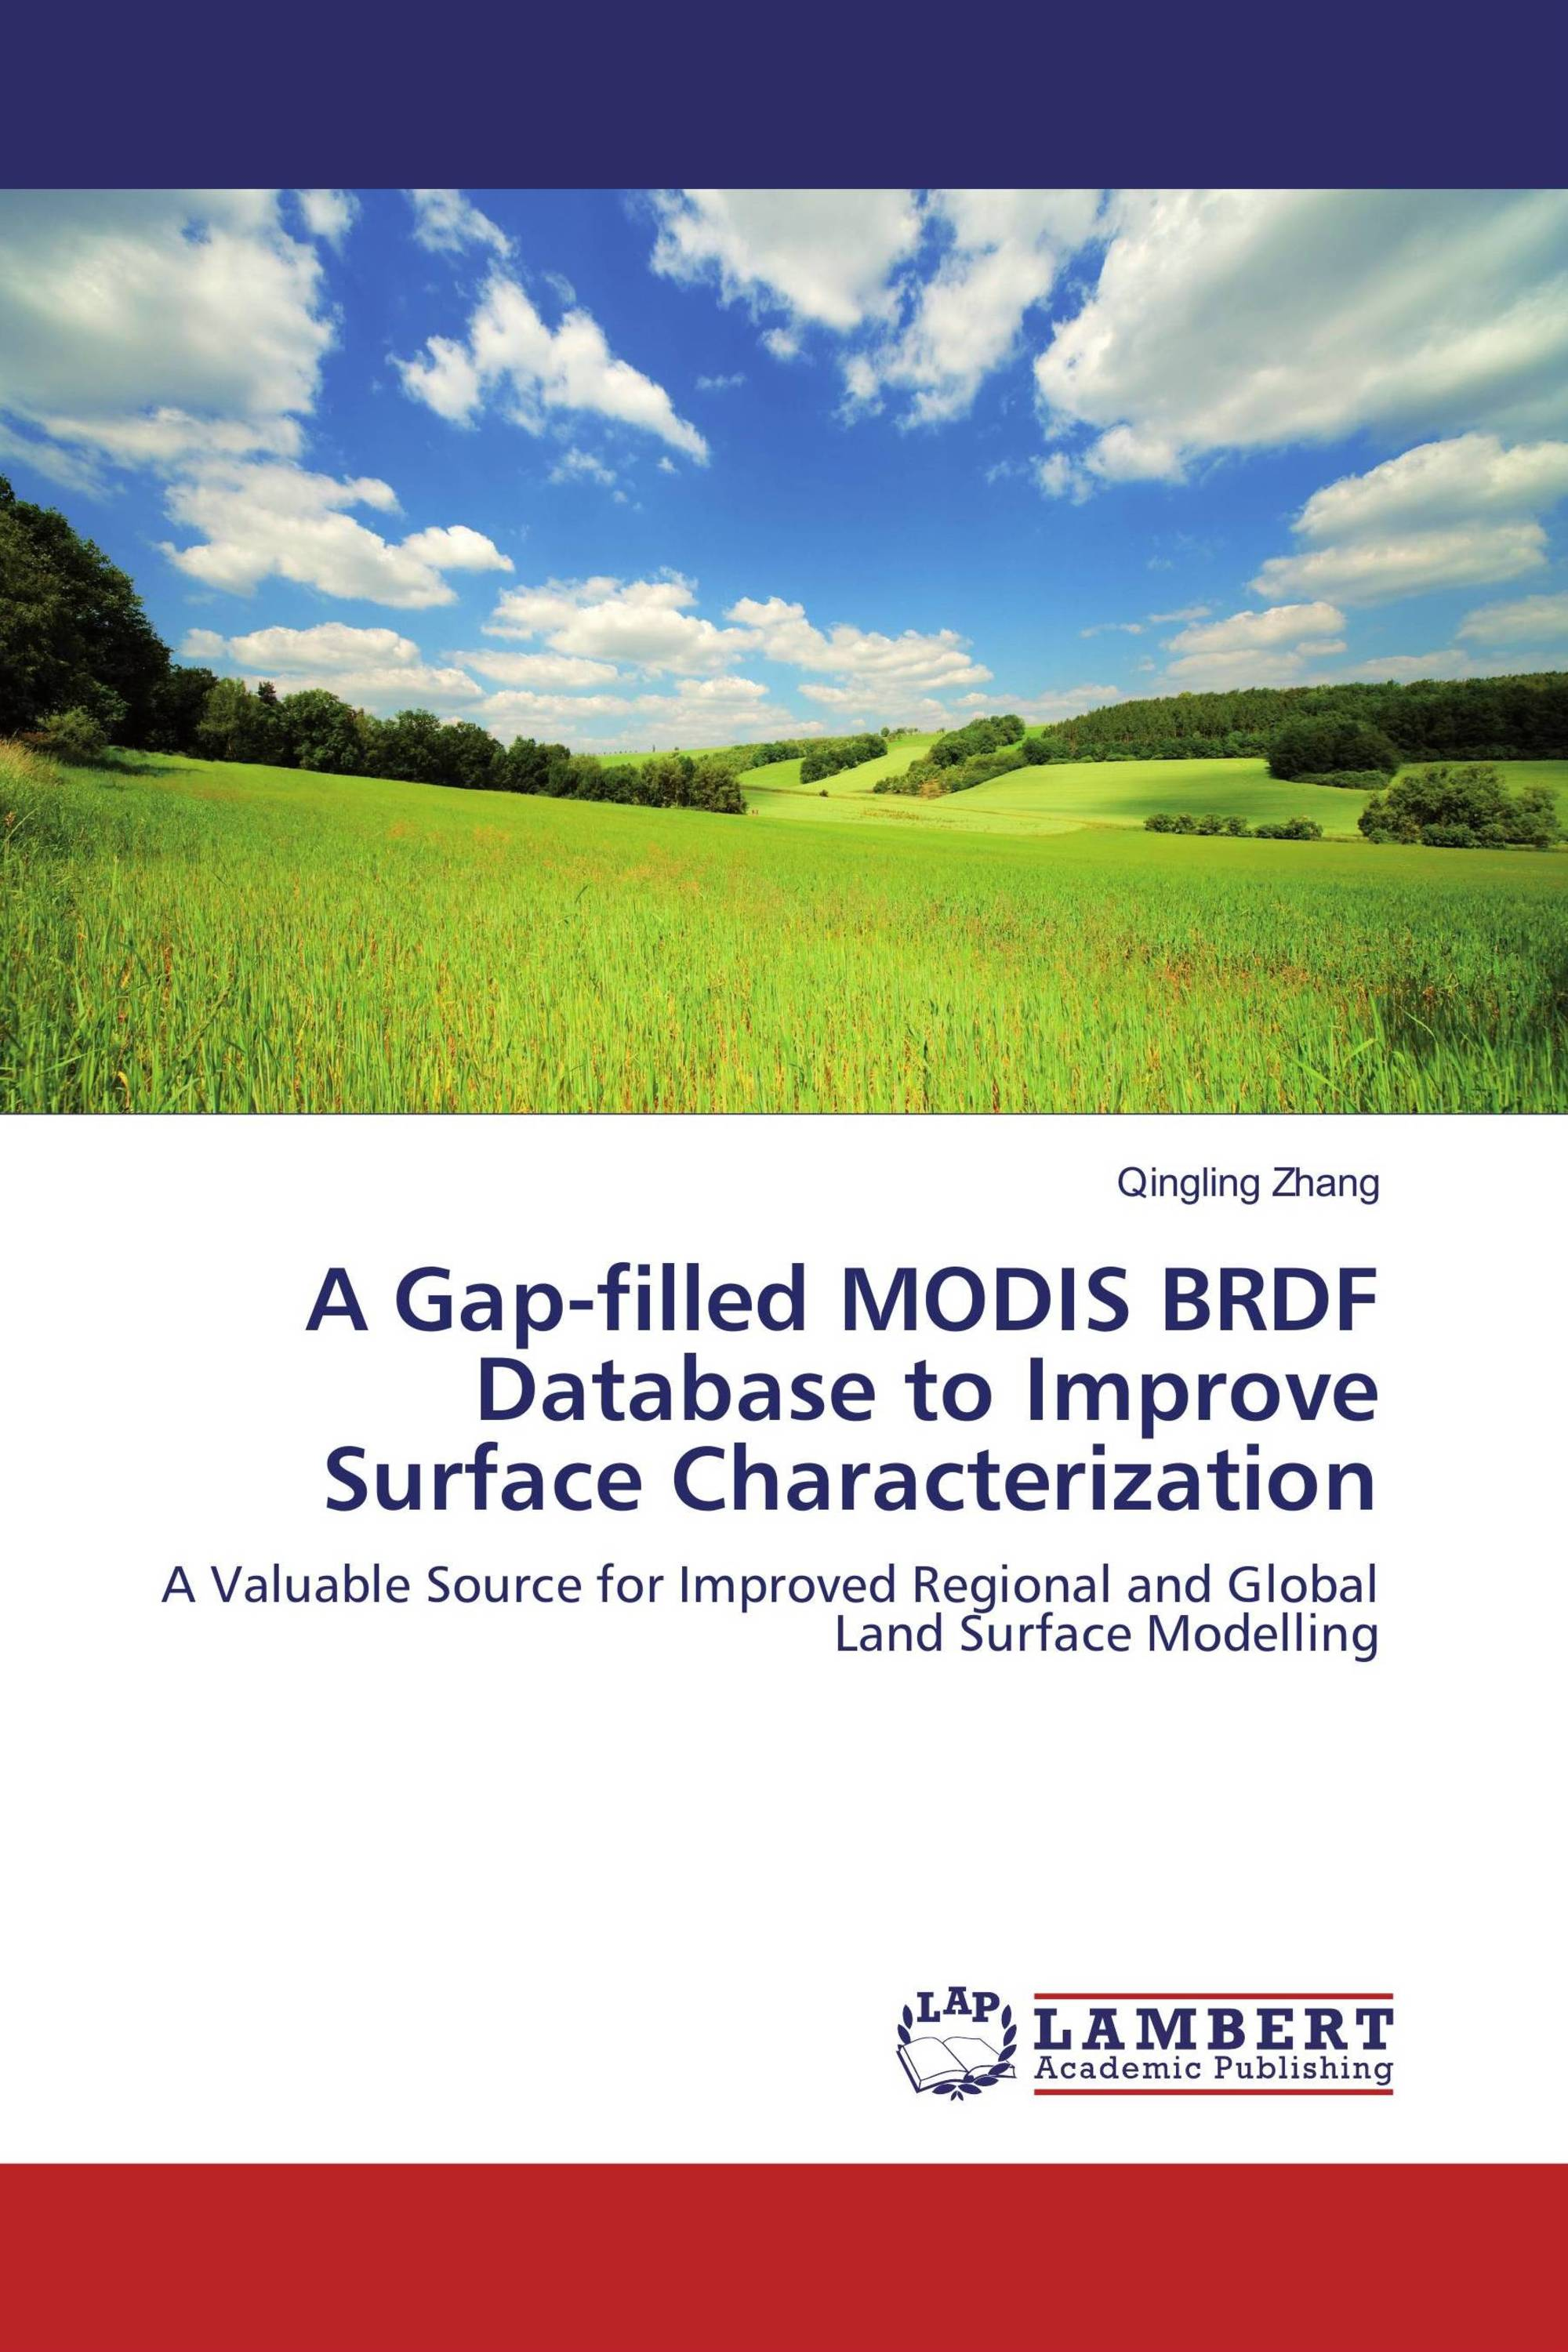 A Gap-filled MODIS BRDF Database to Improve Surface Characterization